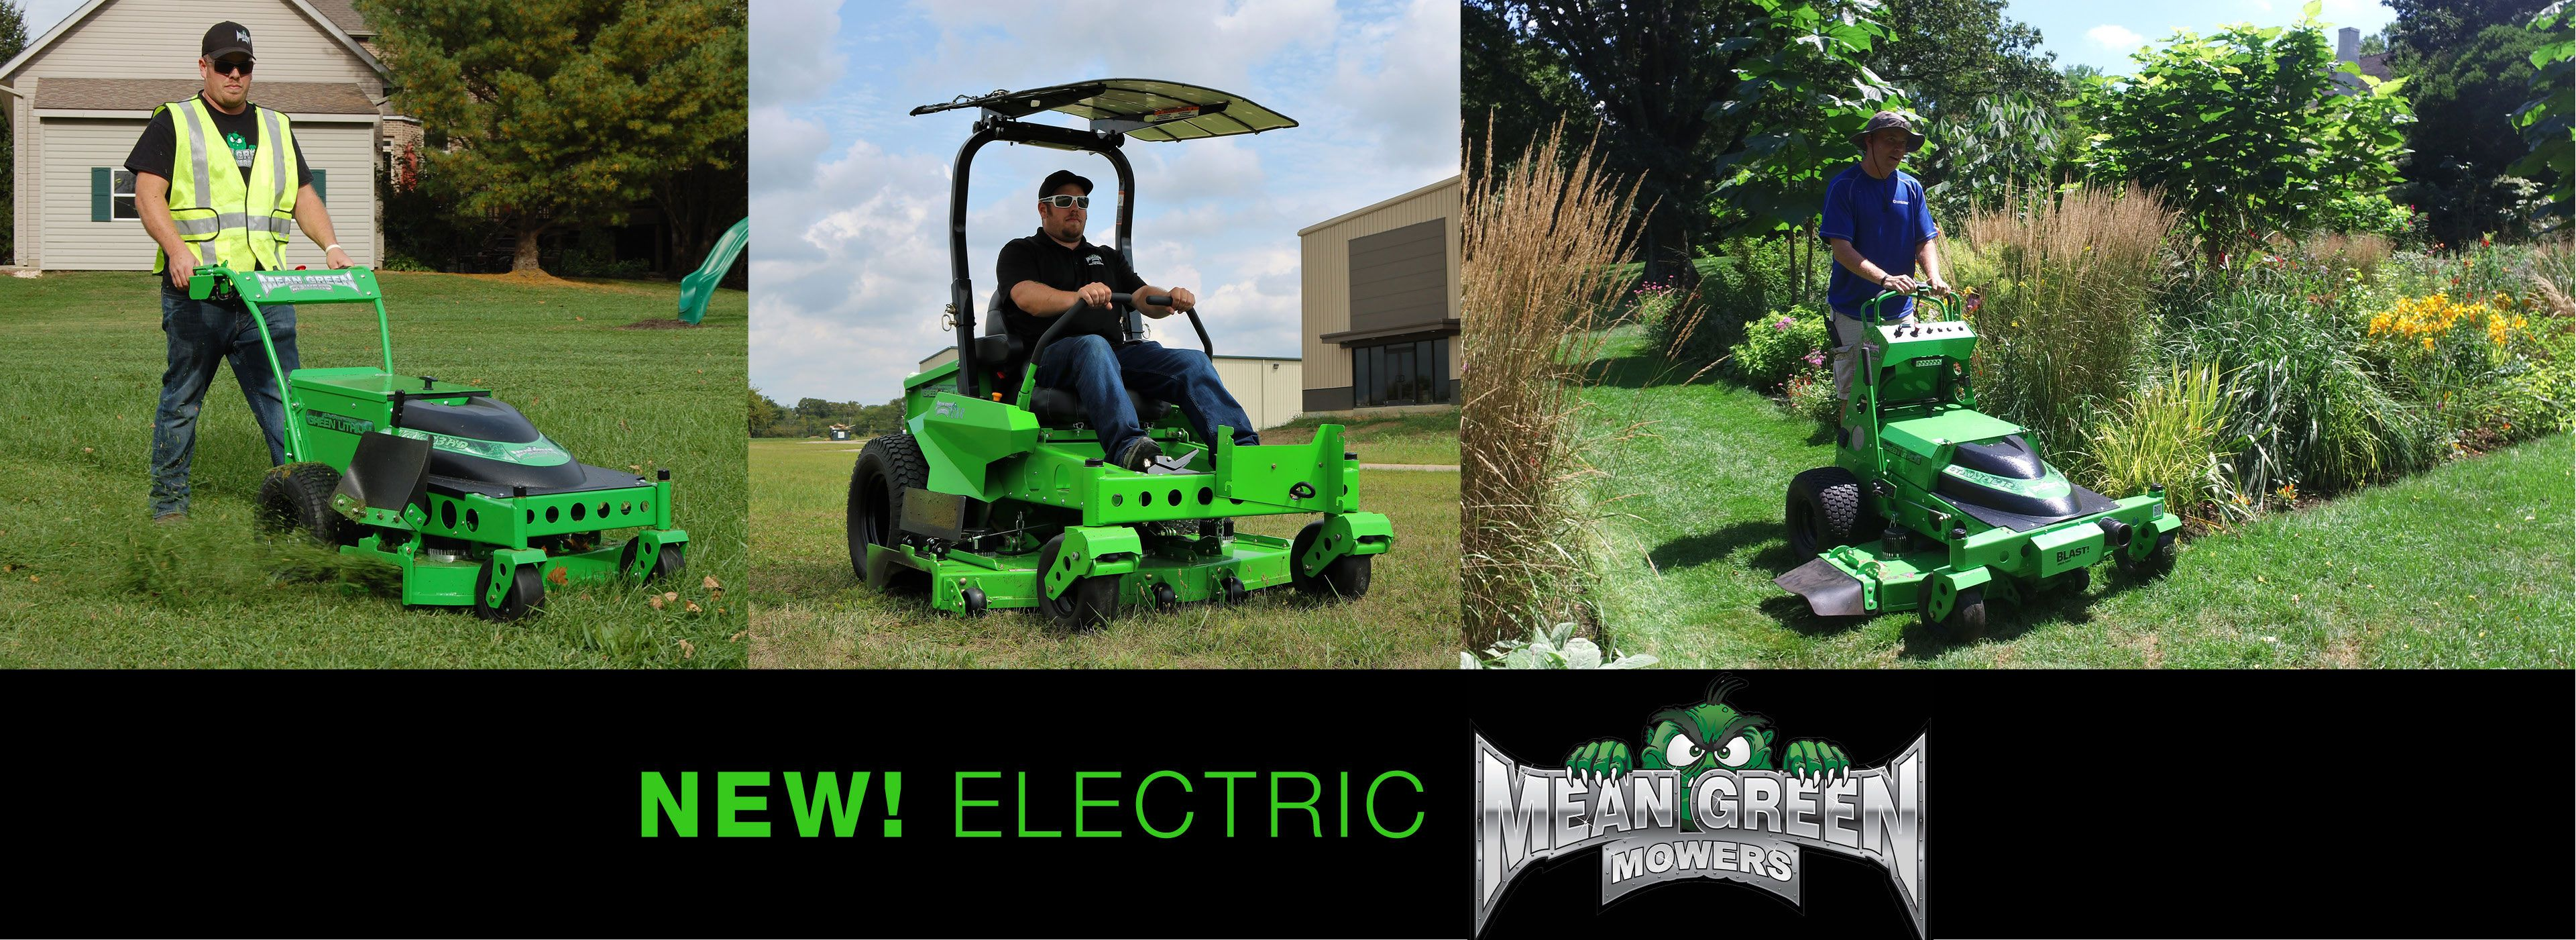 MEAN GREEN ELECTRIC MOWERS